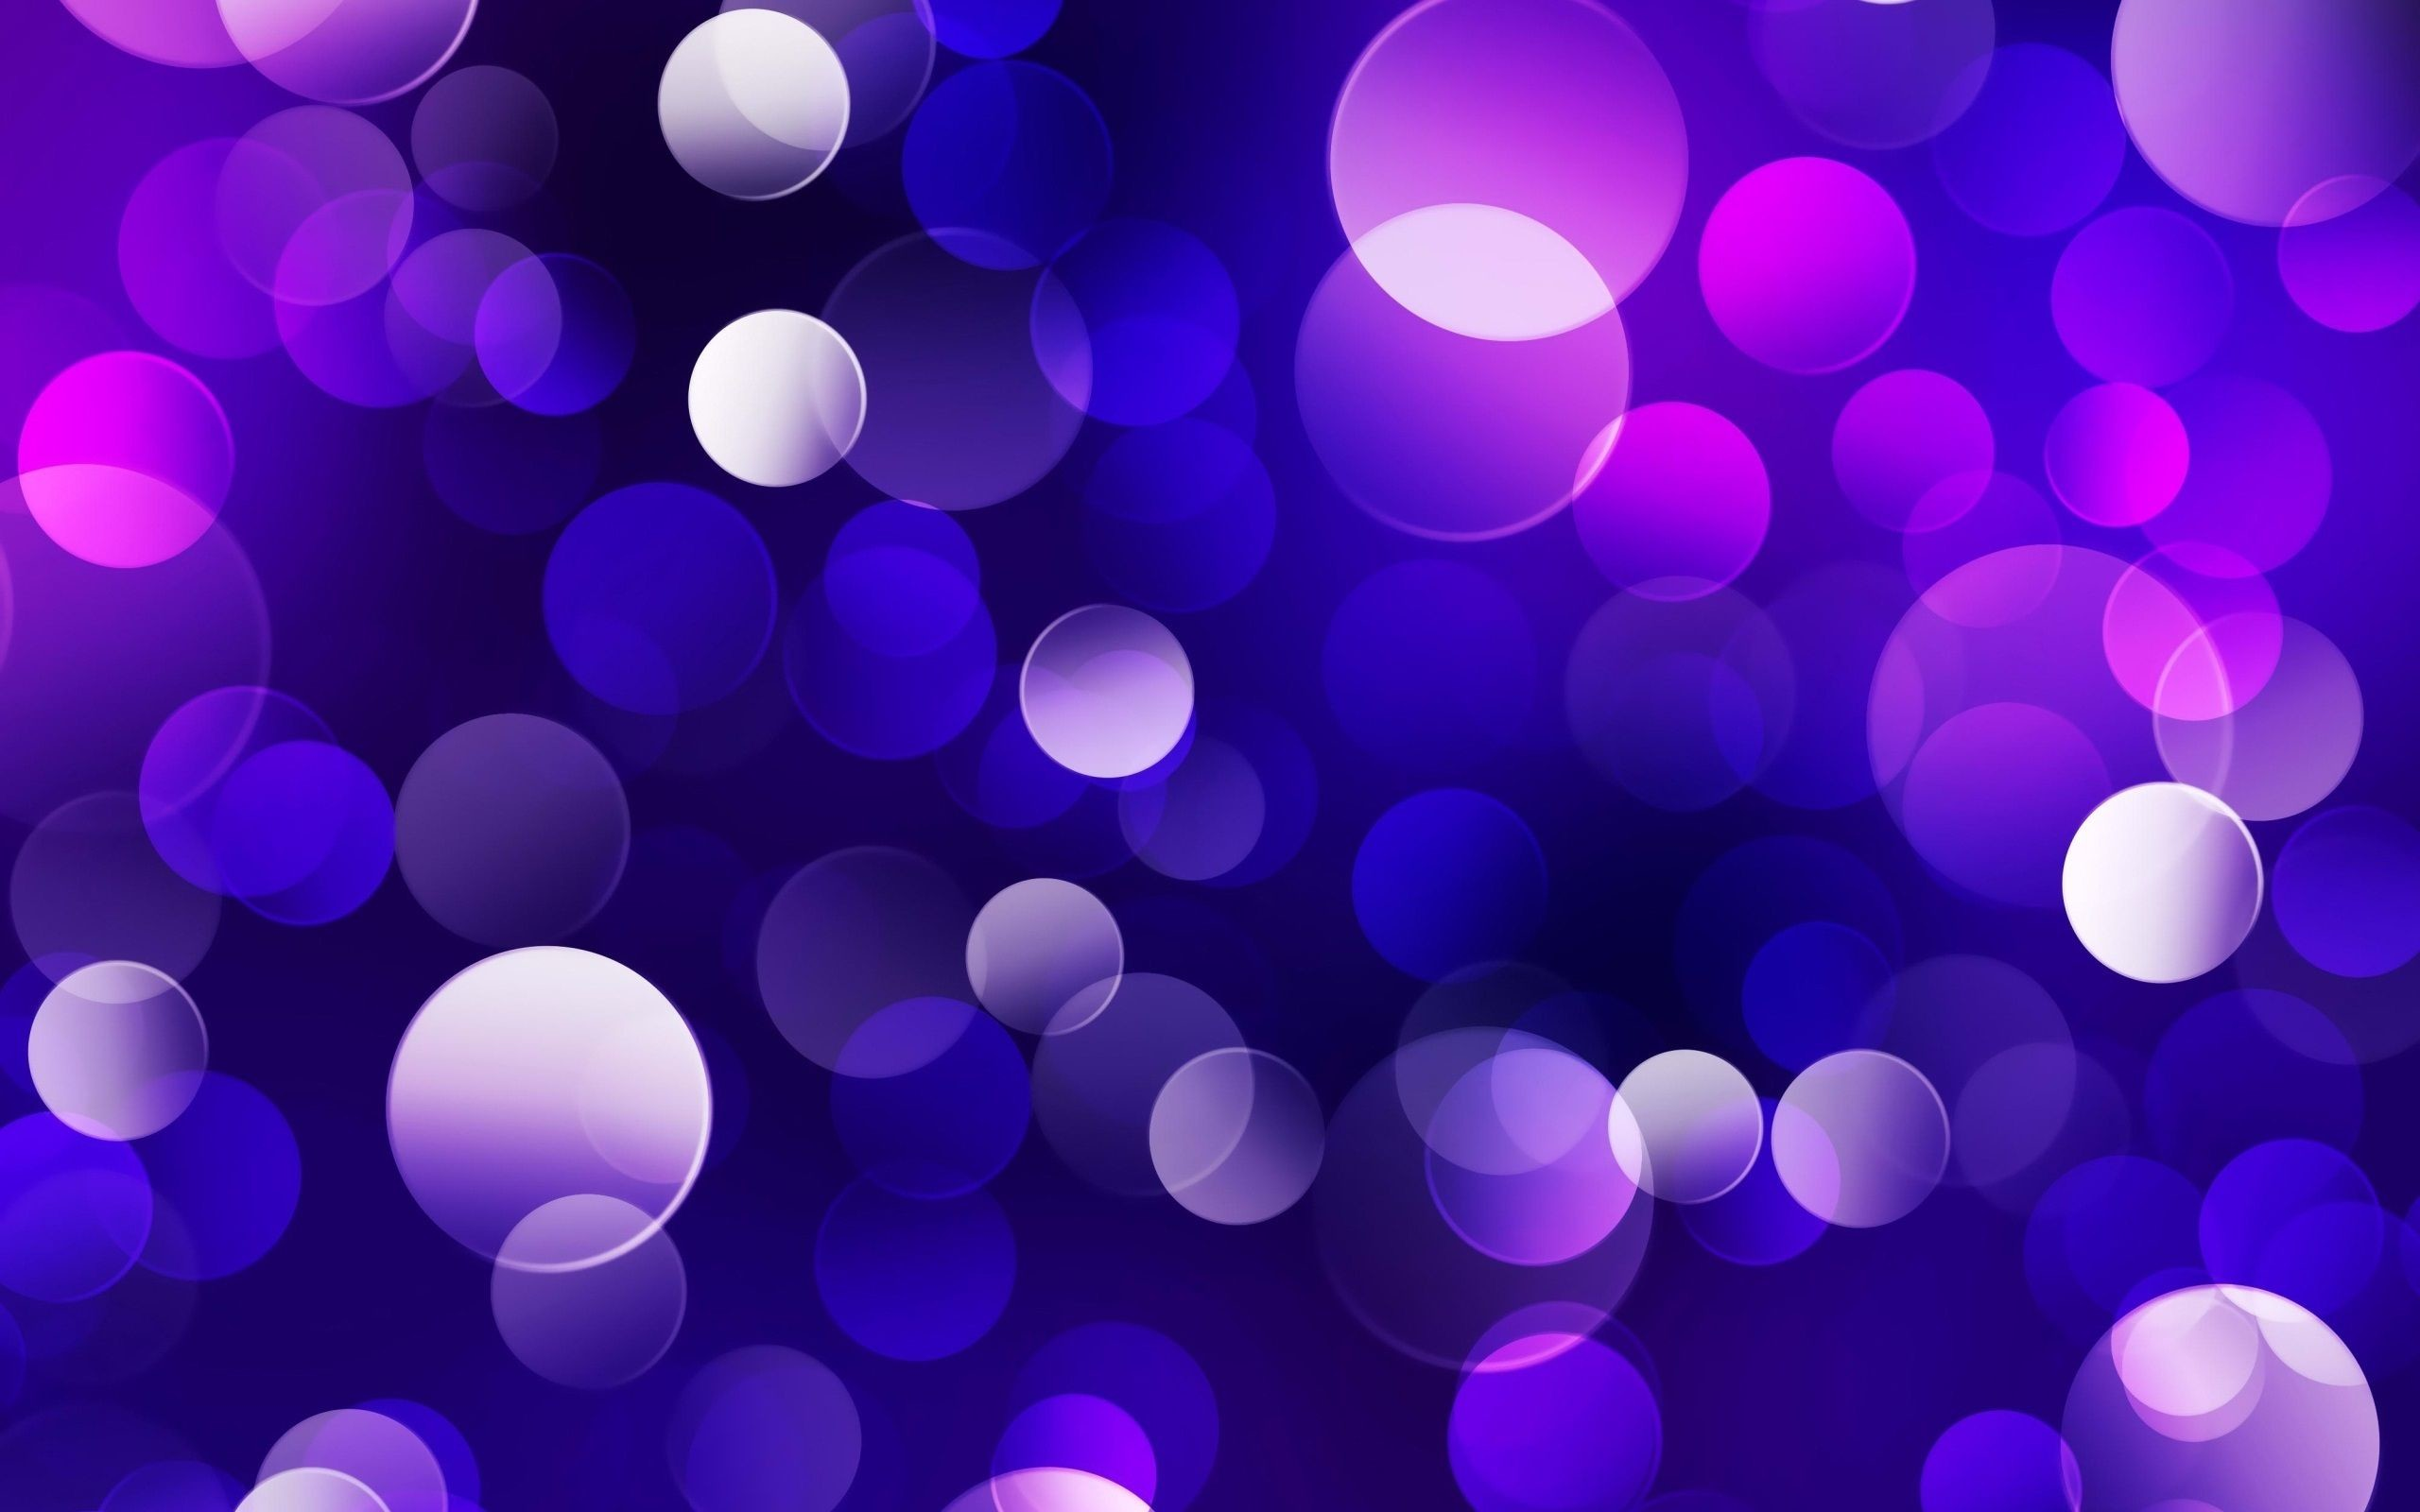 2560x1600 Abstract Wallpaper: Girly Purple Wallpapers Picture with HD .